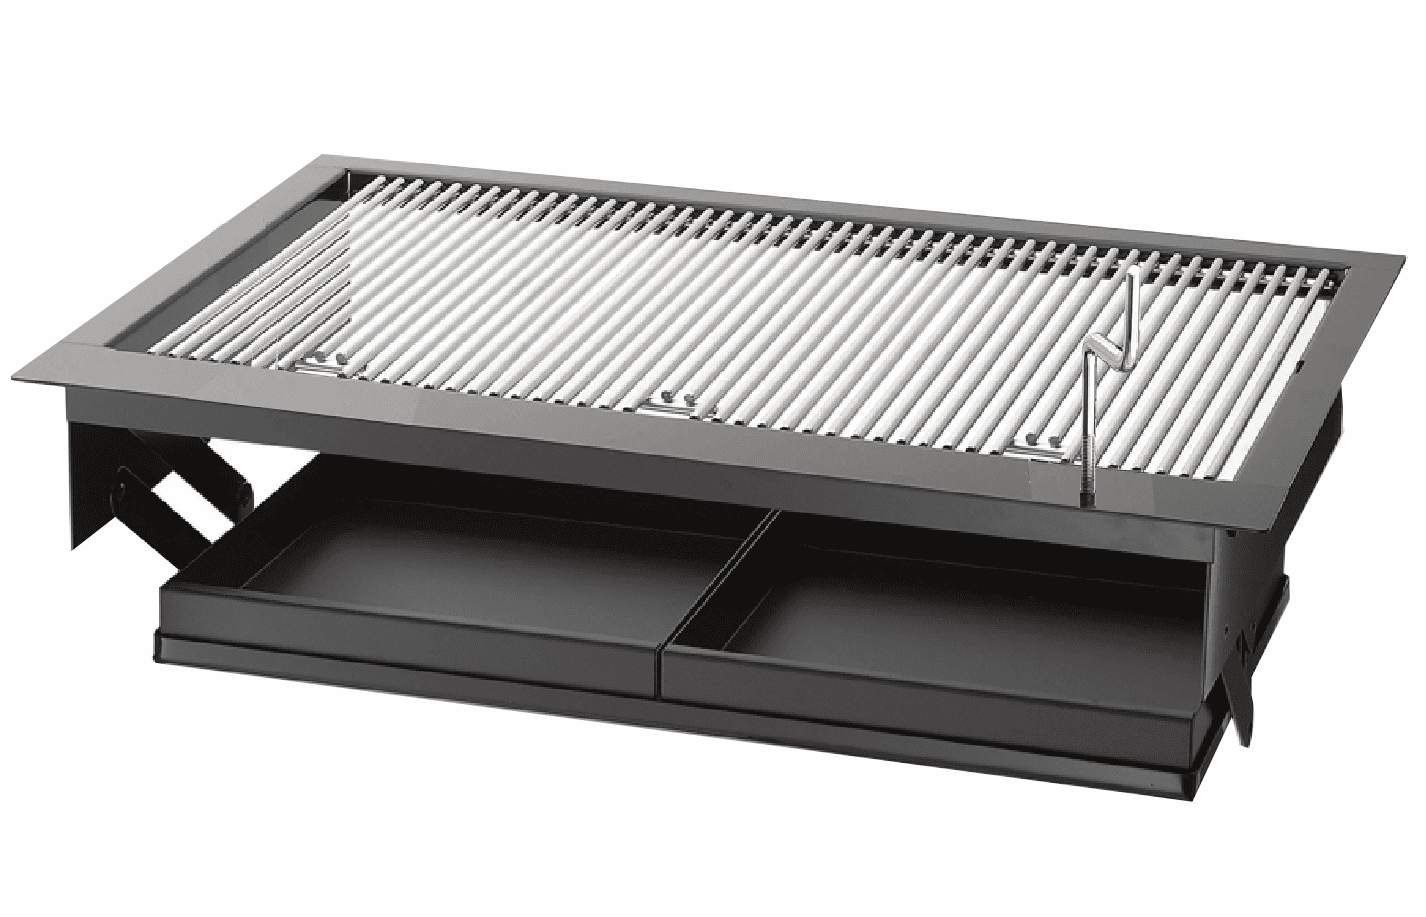 KW5000 - Built in charcoal grill  18 X 30 Drop-in